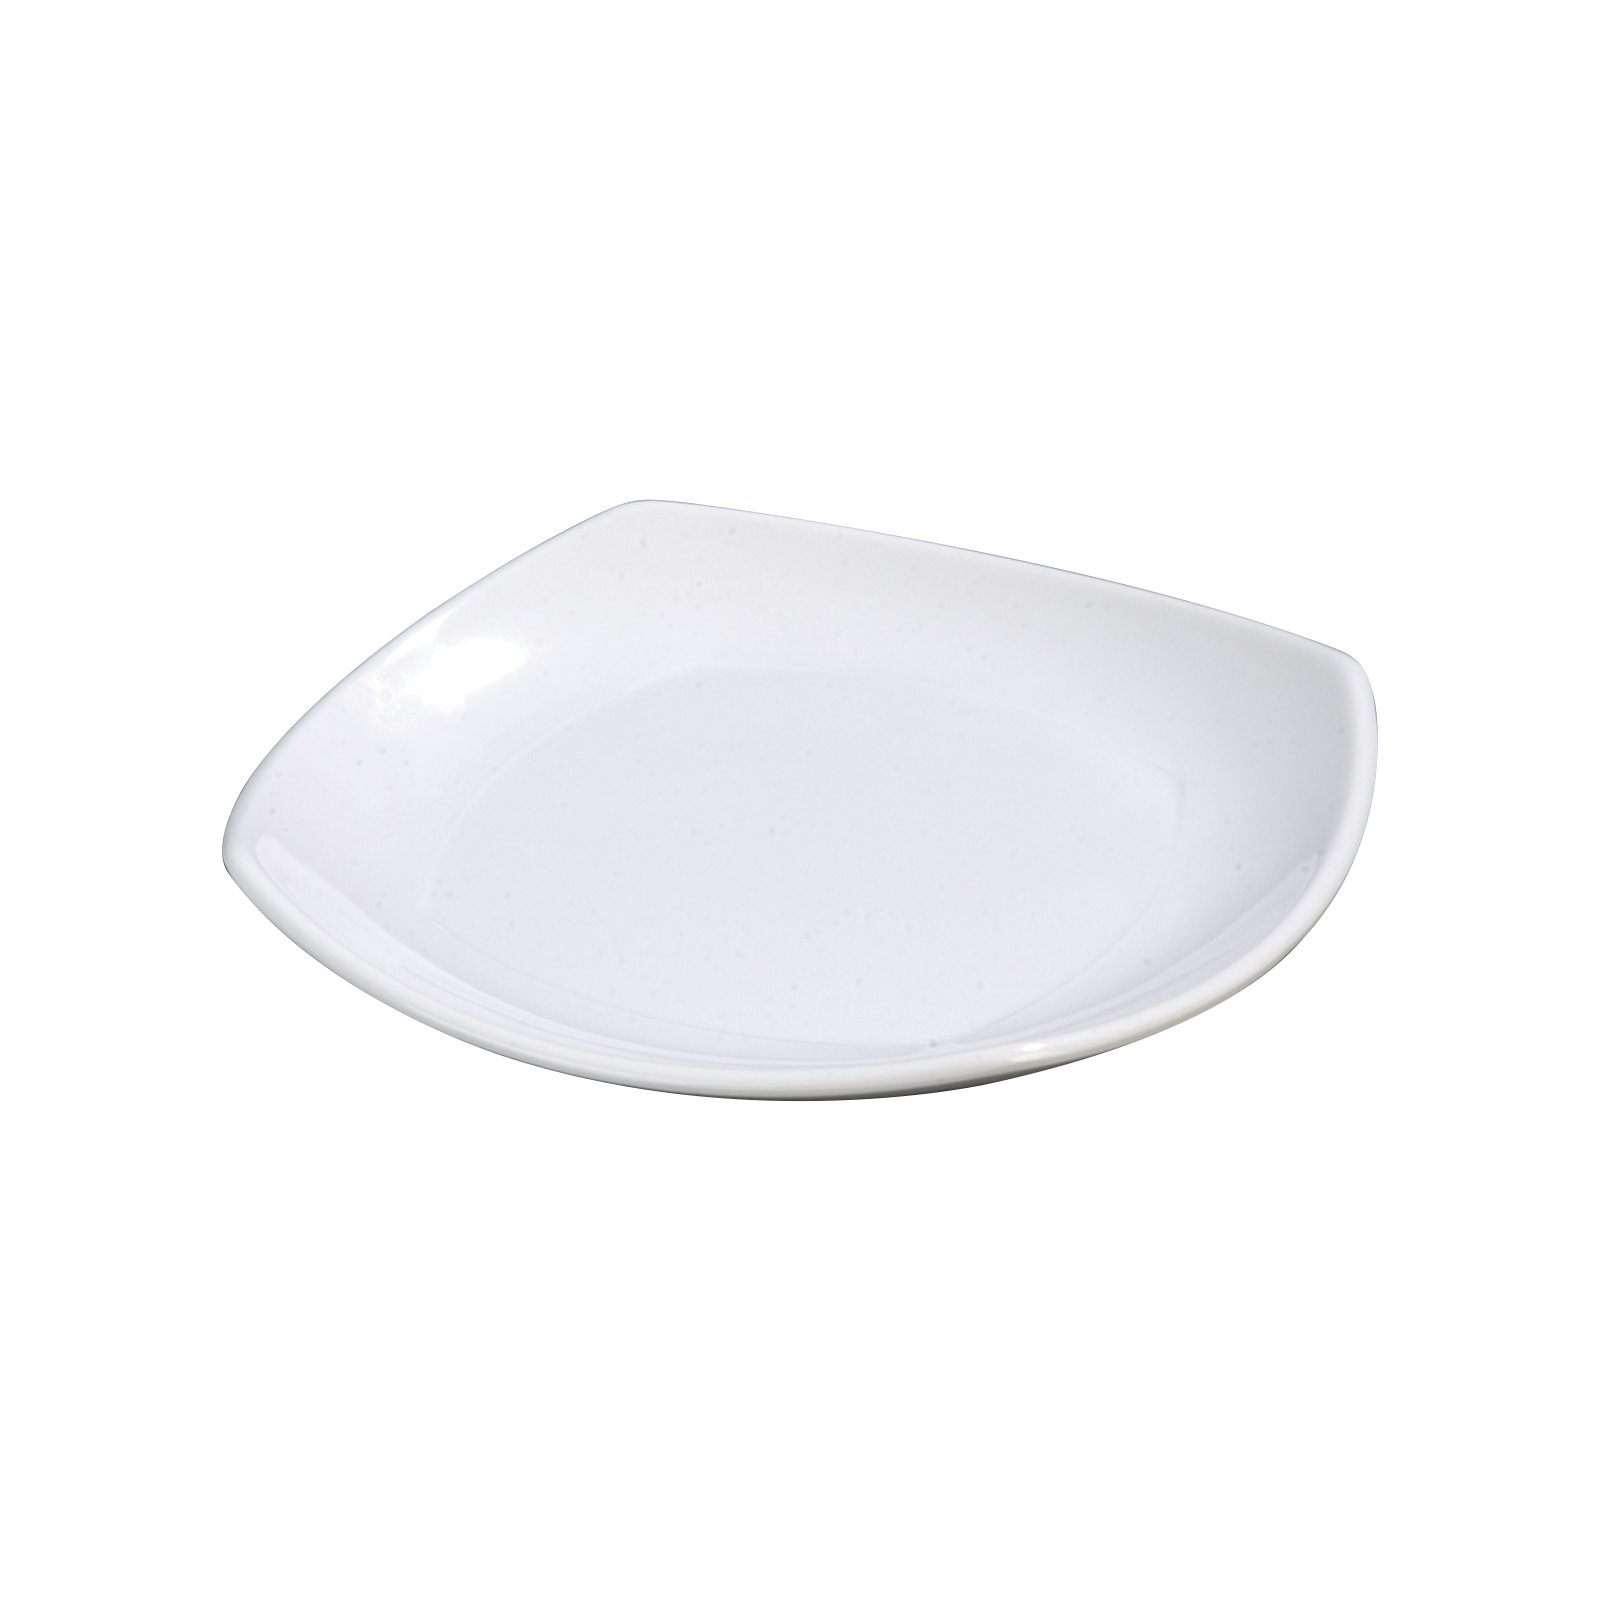 4330802 - Melamine Upturned Corner Small Square Plate 7.75  - White  sc 1 st  Carlisle FoodService Products & 4330802 - Melamine Upturned Corner Small Square Plate 7.75